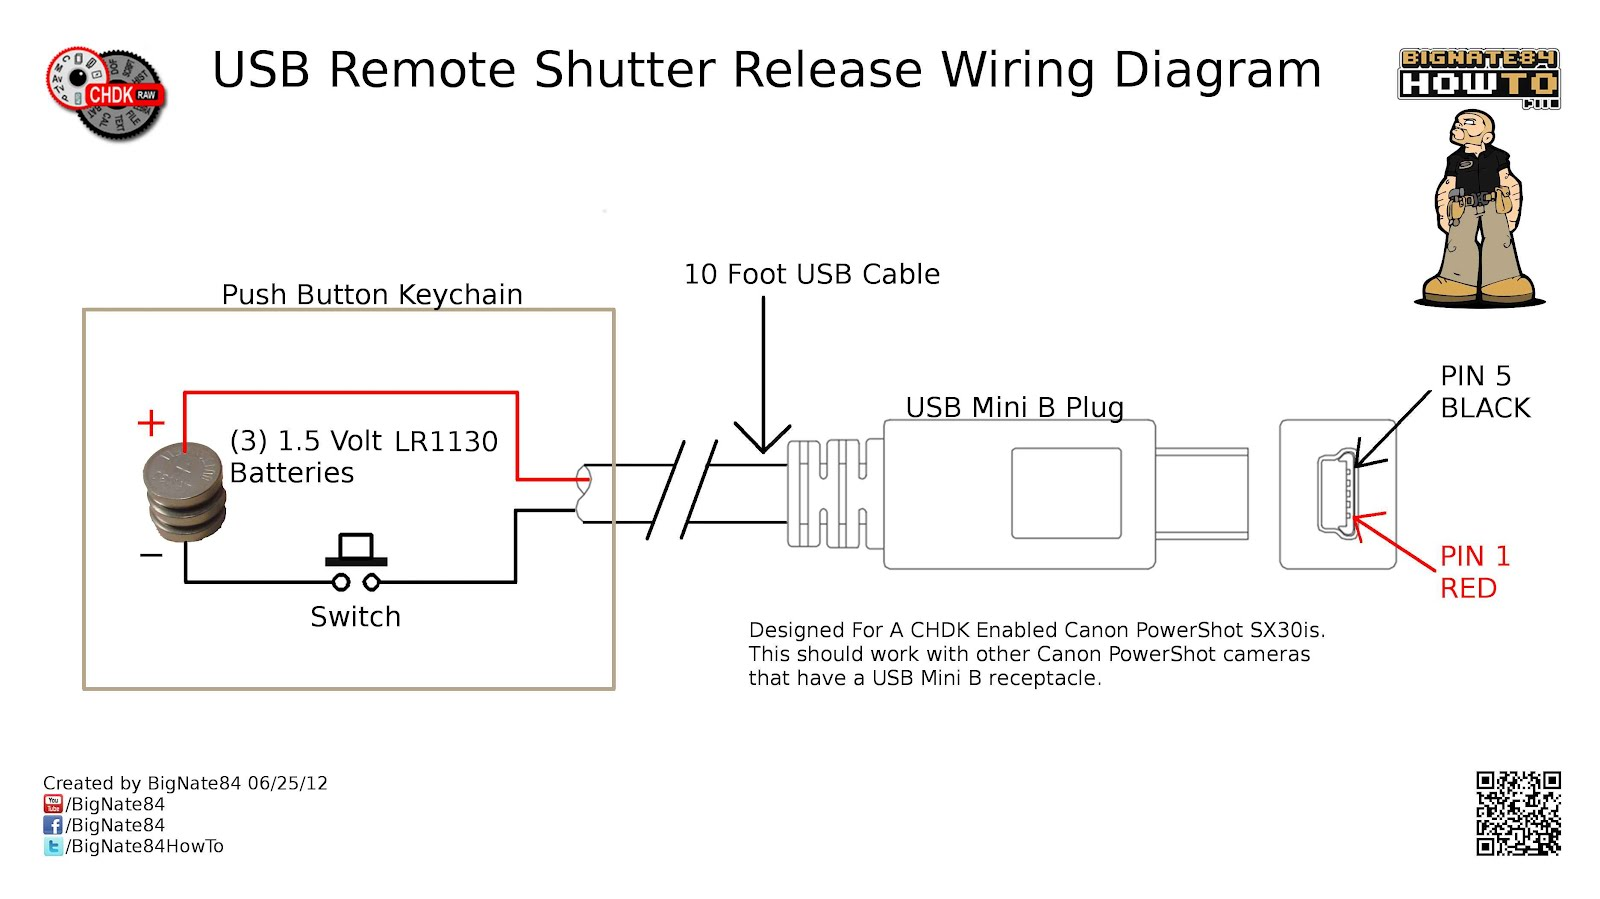 latest?cb=20120809225626 image 0001 usb remote shutter wiring diagram 1 jpeg chdk wiki micro usb plug wiring diagram at gsmx.co